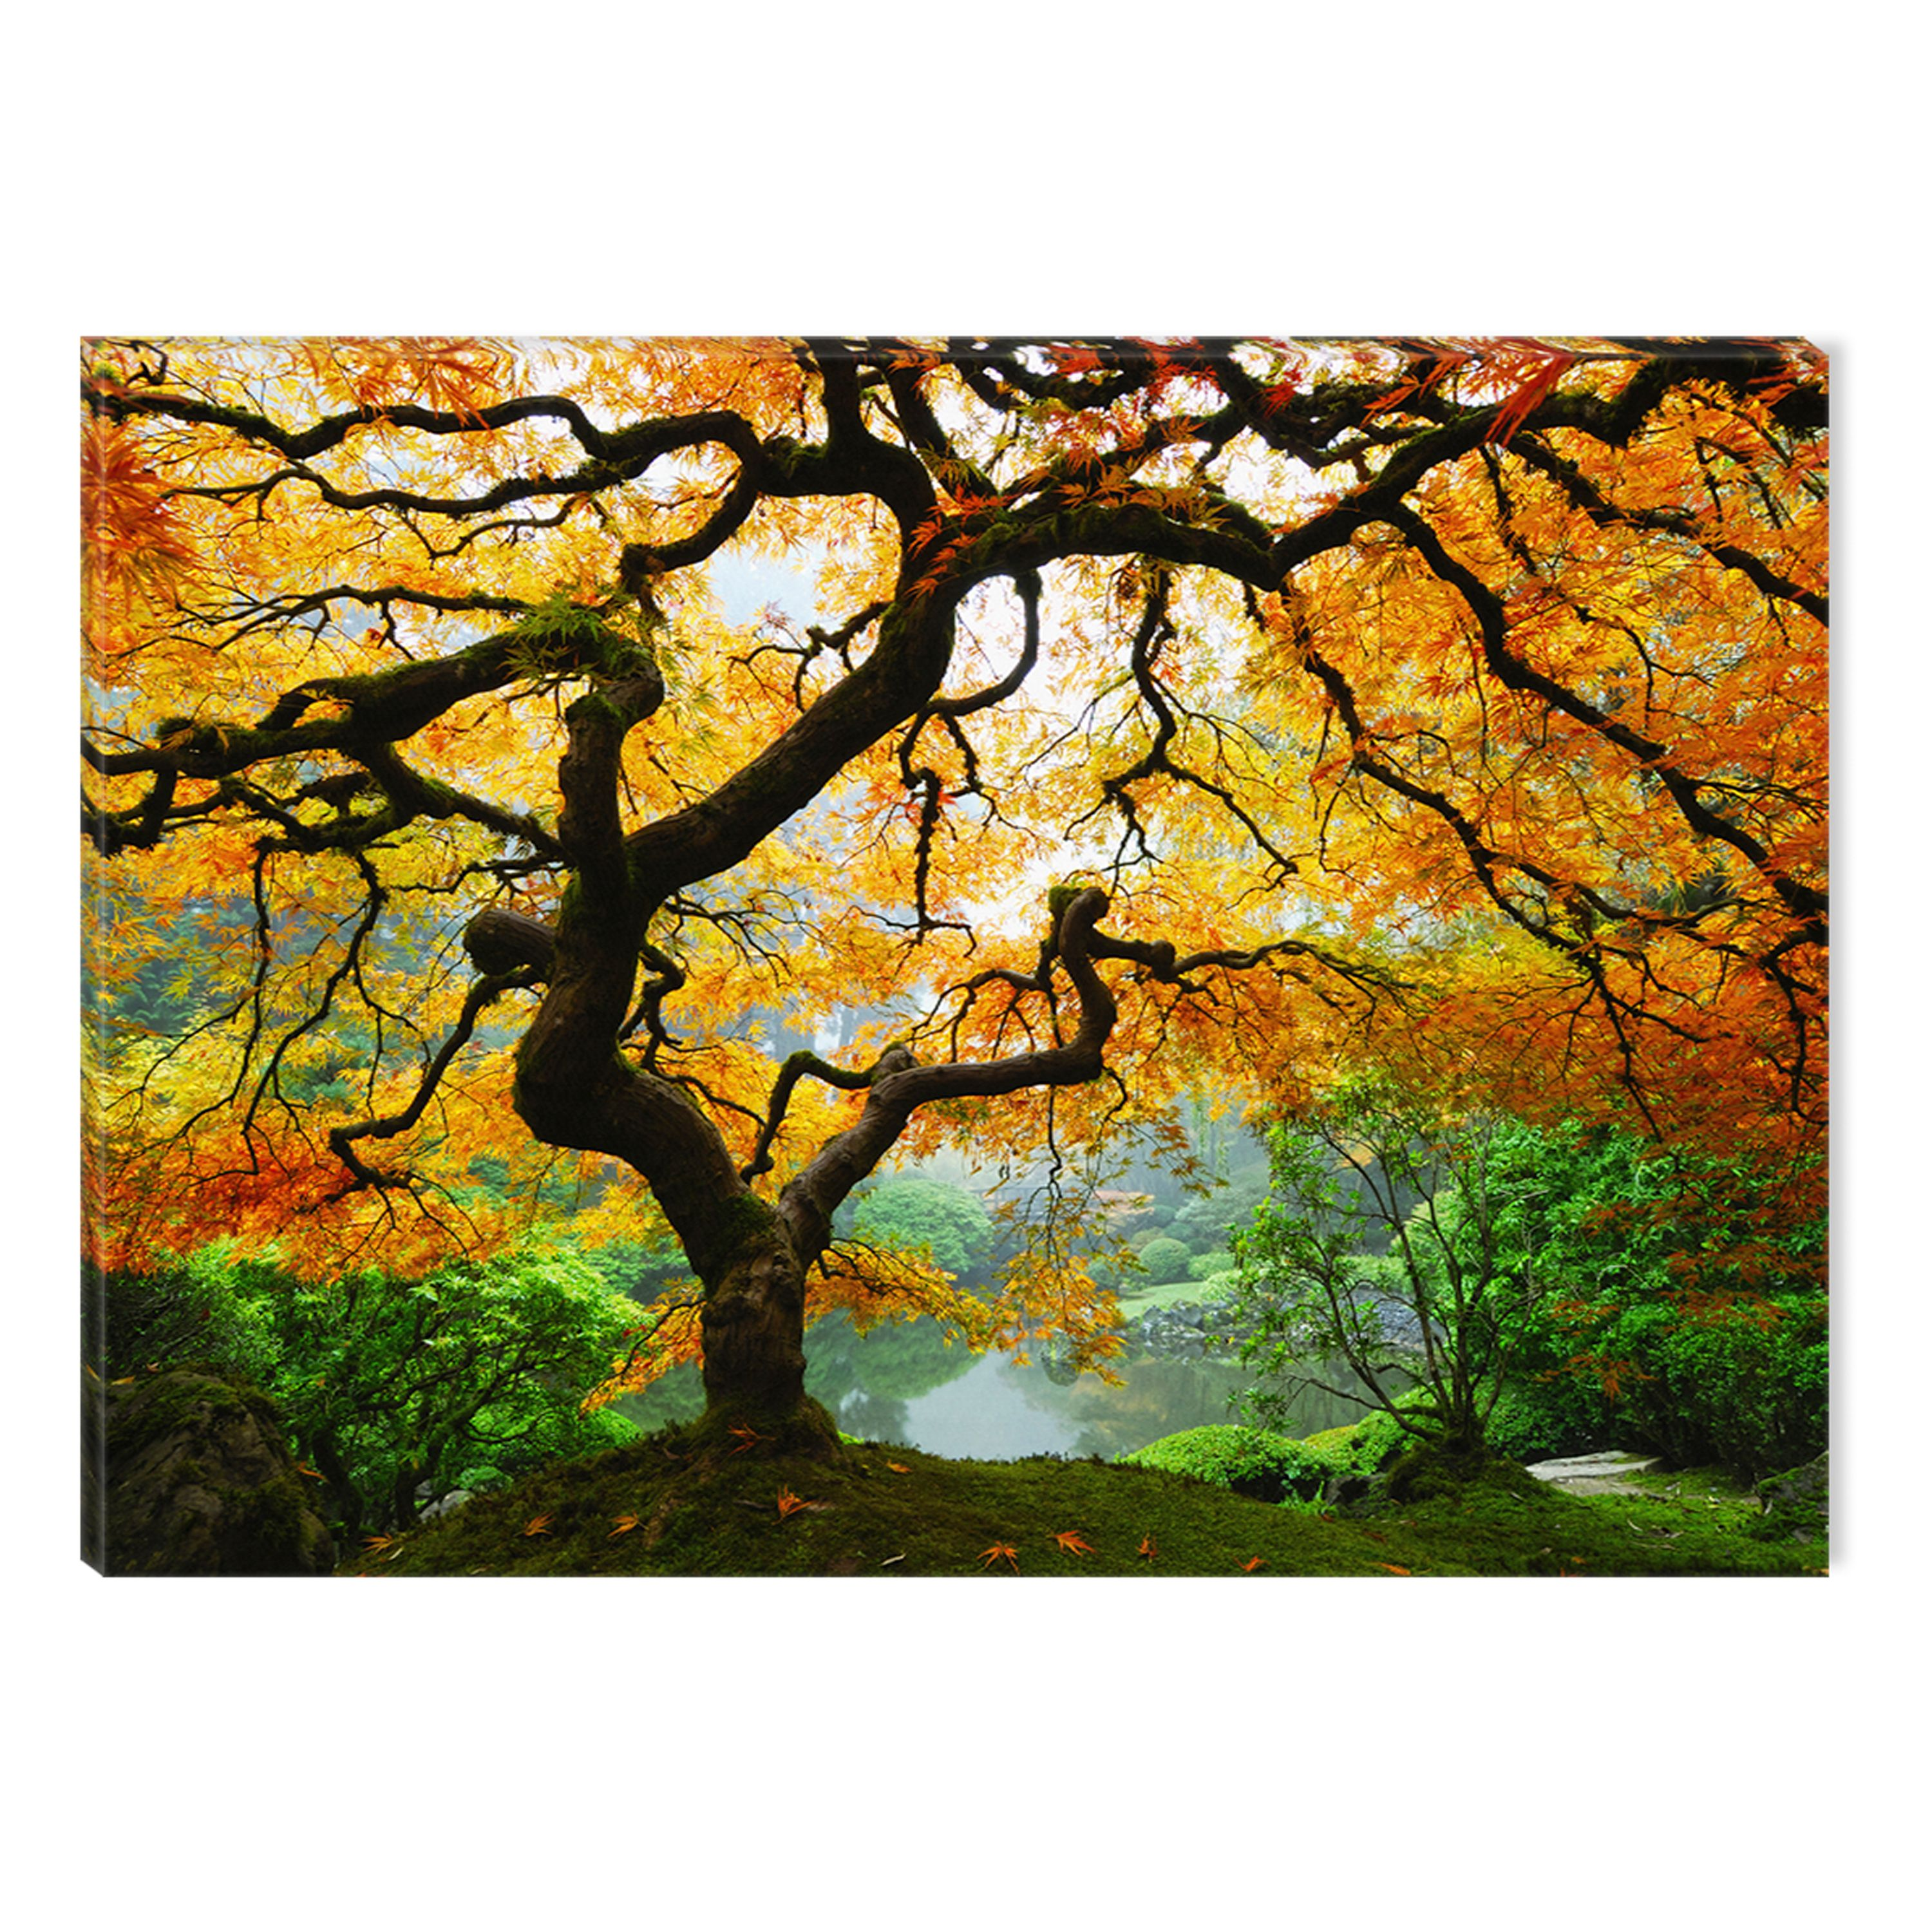 Startonight Canvas Wall Art Maple Tree USA Design for Home Decor, Illuminated